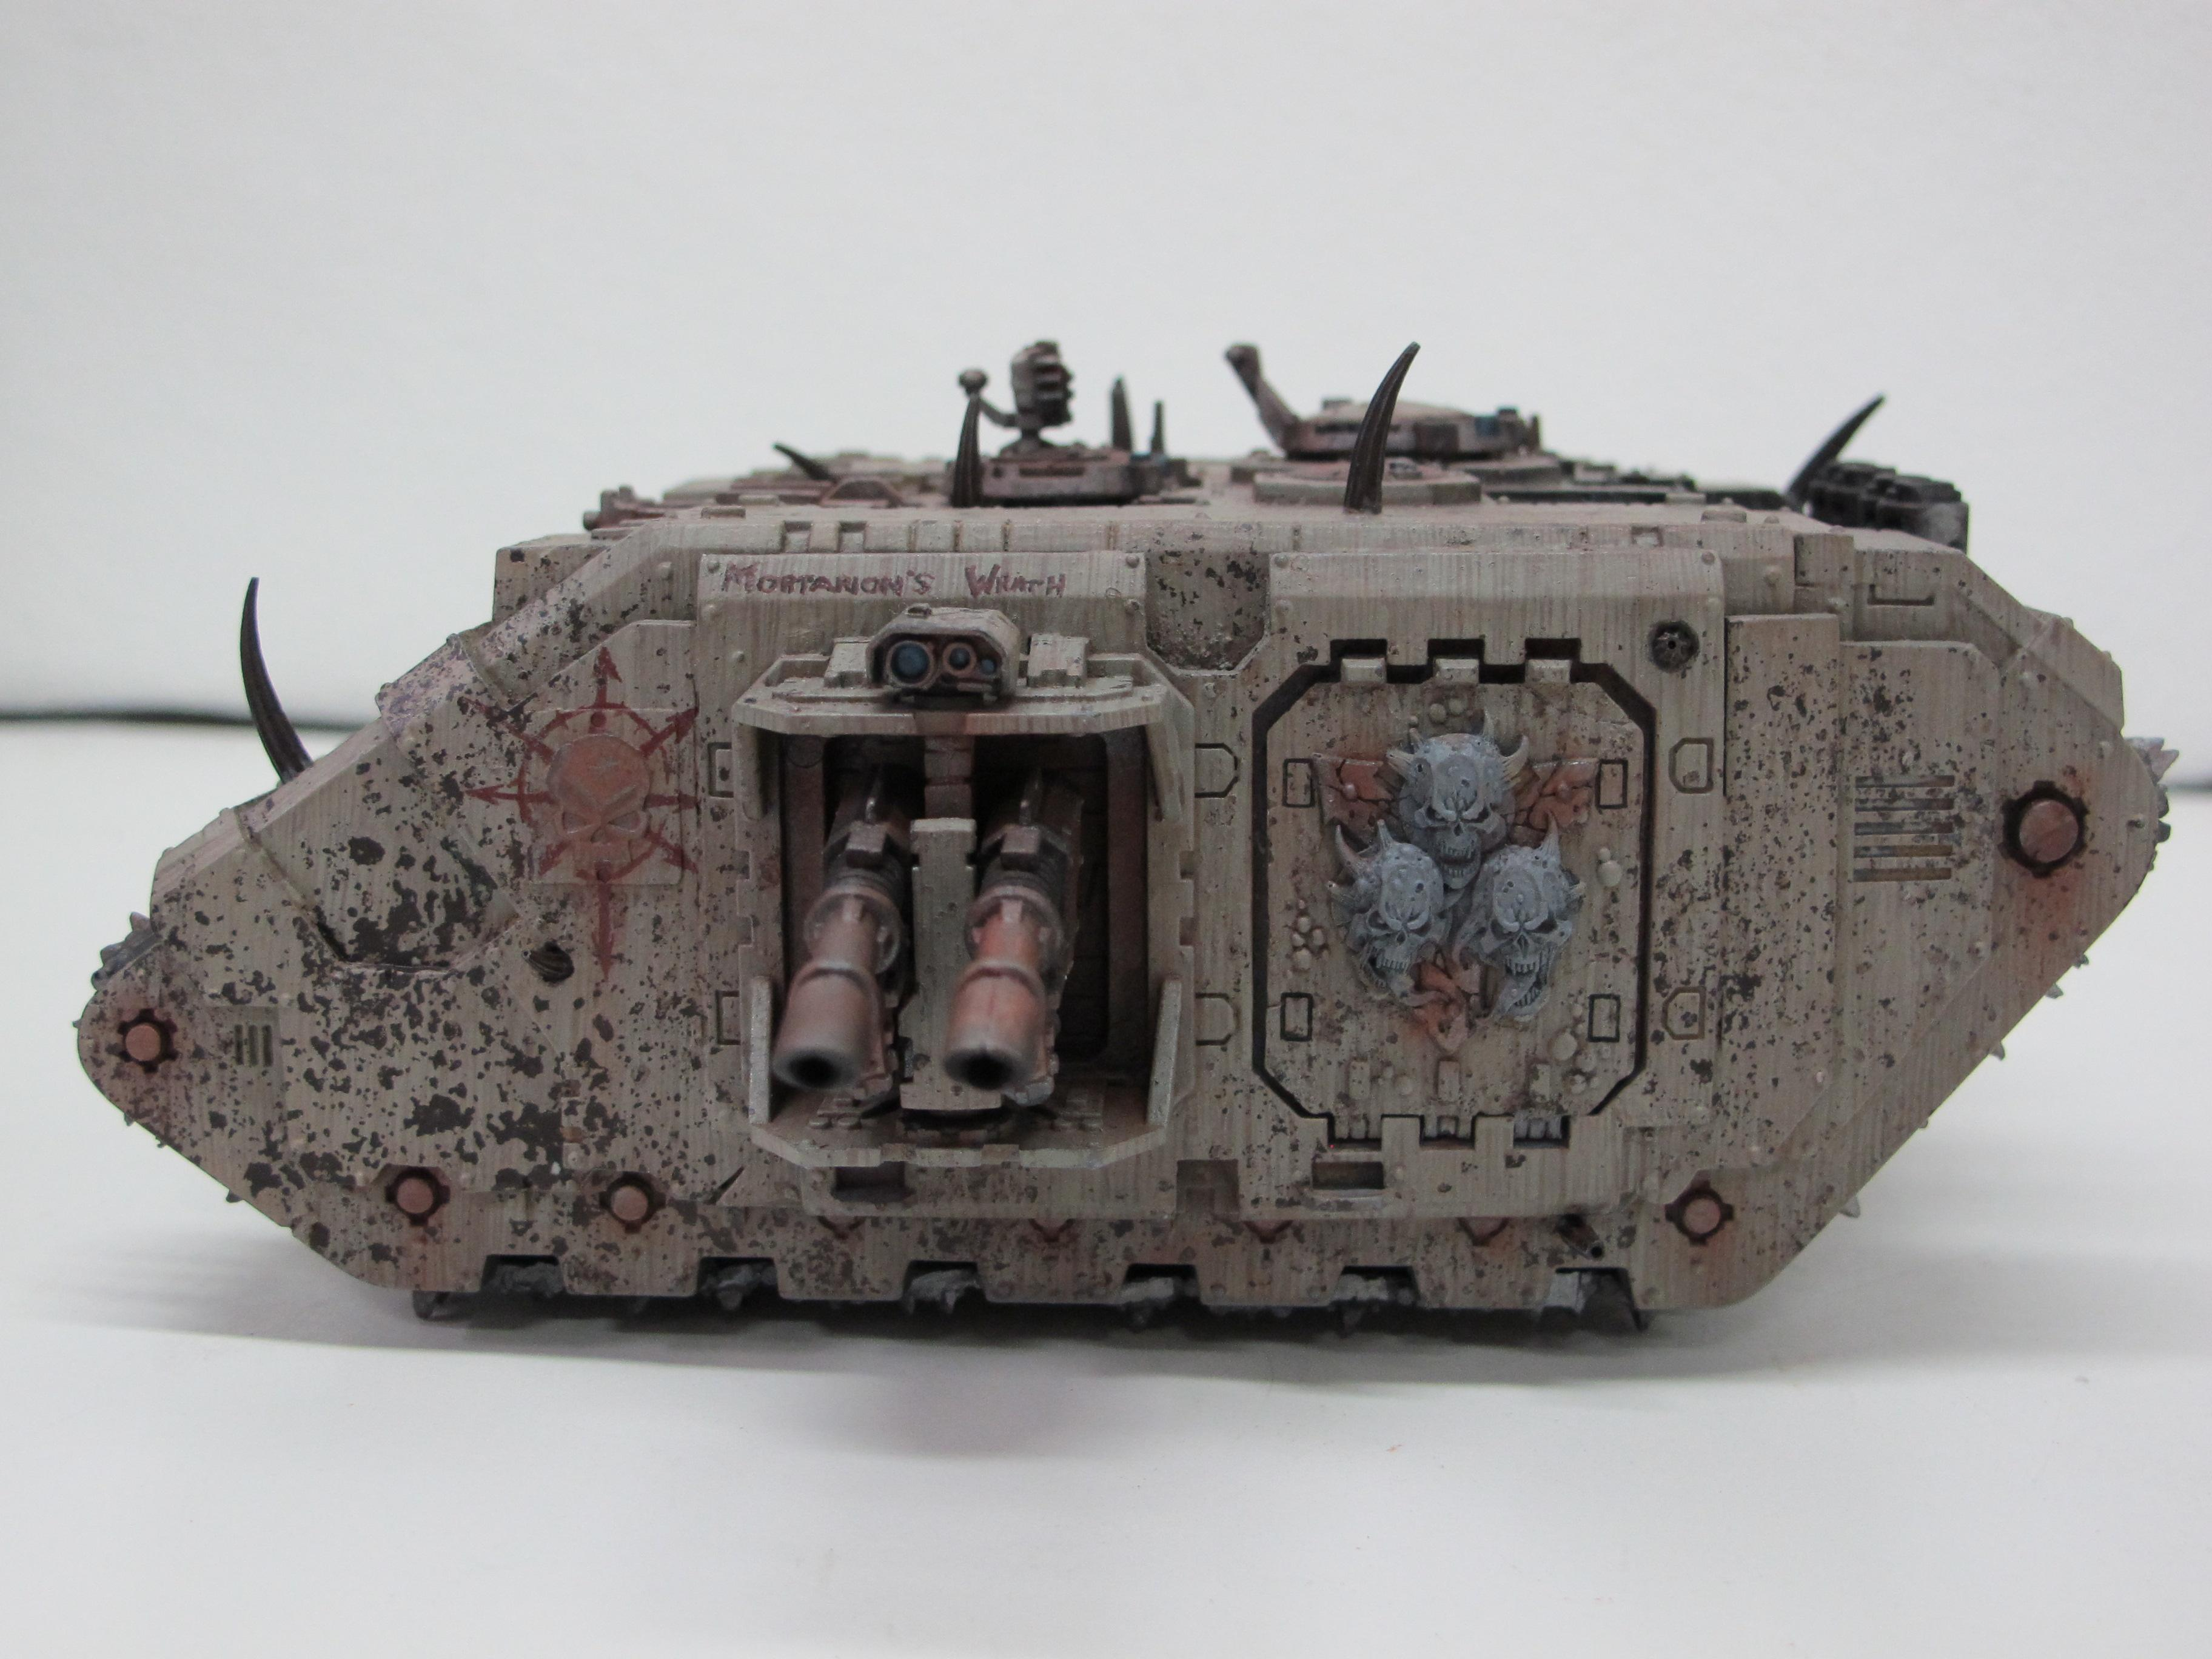 Chaos, Chaos Space Marines, Death Guard, Heretic, Land Raider, Lords Of Decay, Nurgle, Plague Marines, Renegade, Rust, Vraks